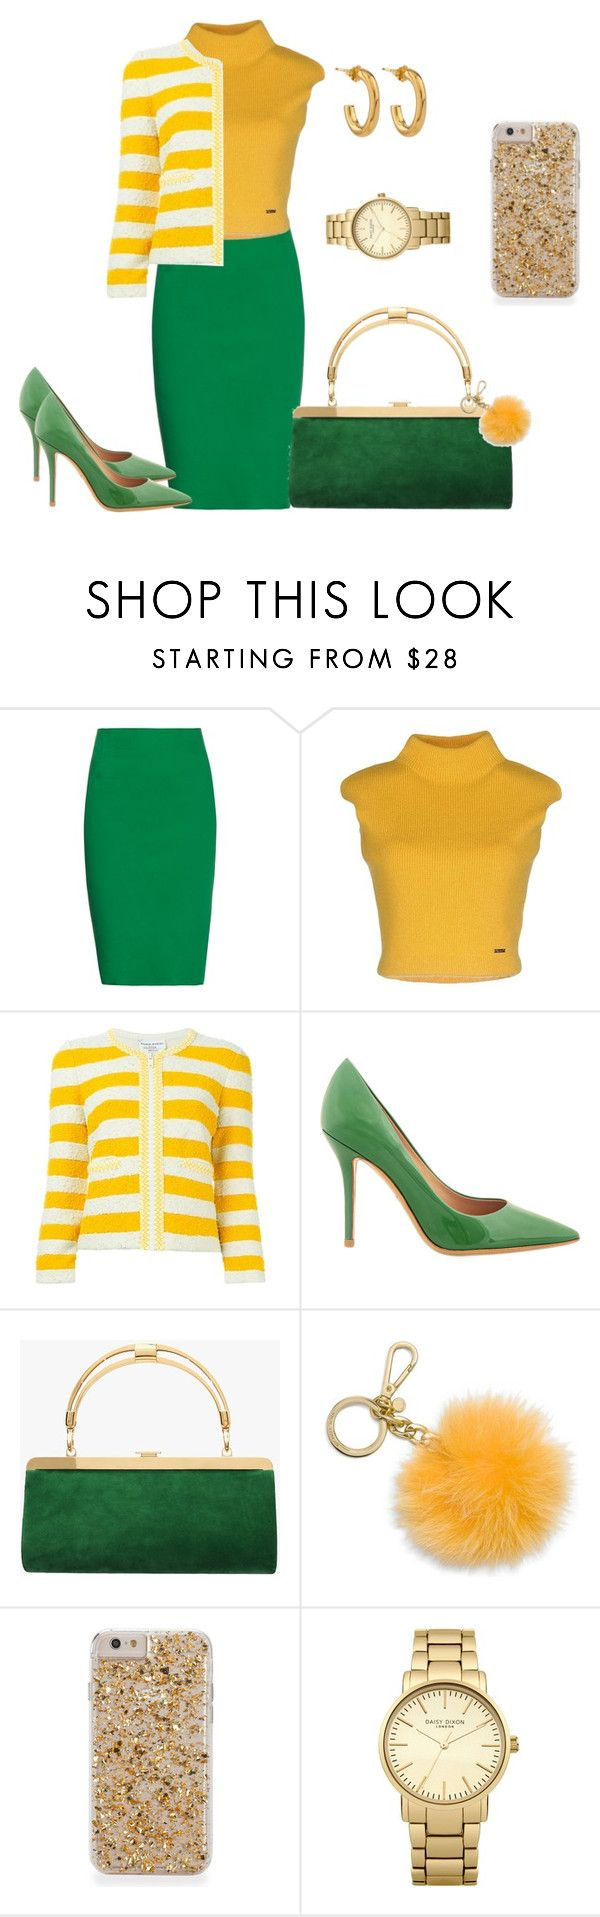 """""""9 am  Meeting"""" by shirley-de-gannes ❤ liked on Polyvore featuring Tomas Maier, Dsquared2, Sonia Rykiel, Salvatore Ferragamo, Balmain, MICHAEL Michael Kors, Topshop and Jennifer Fisher"""